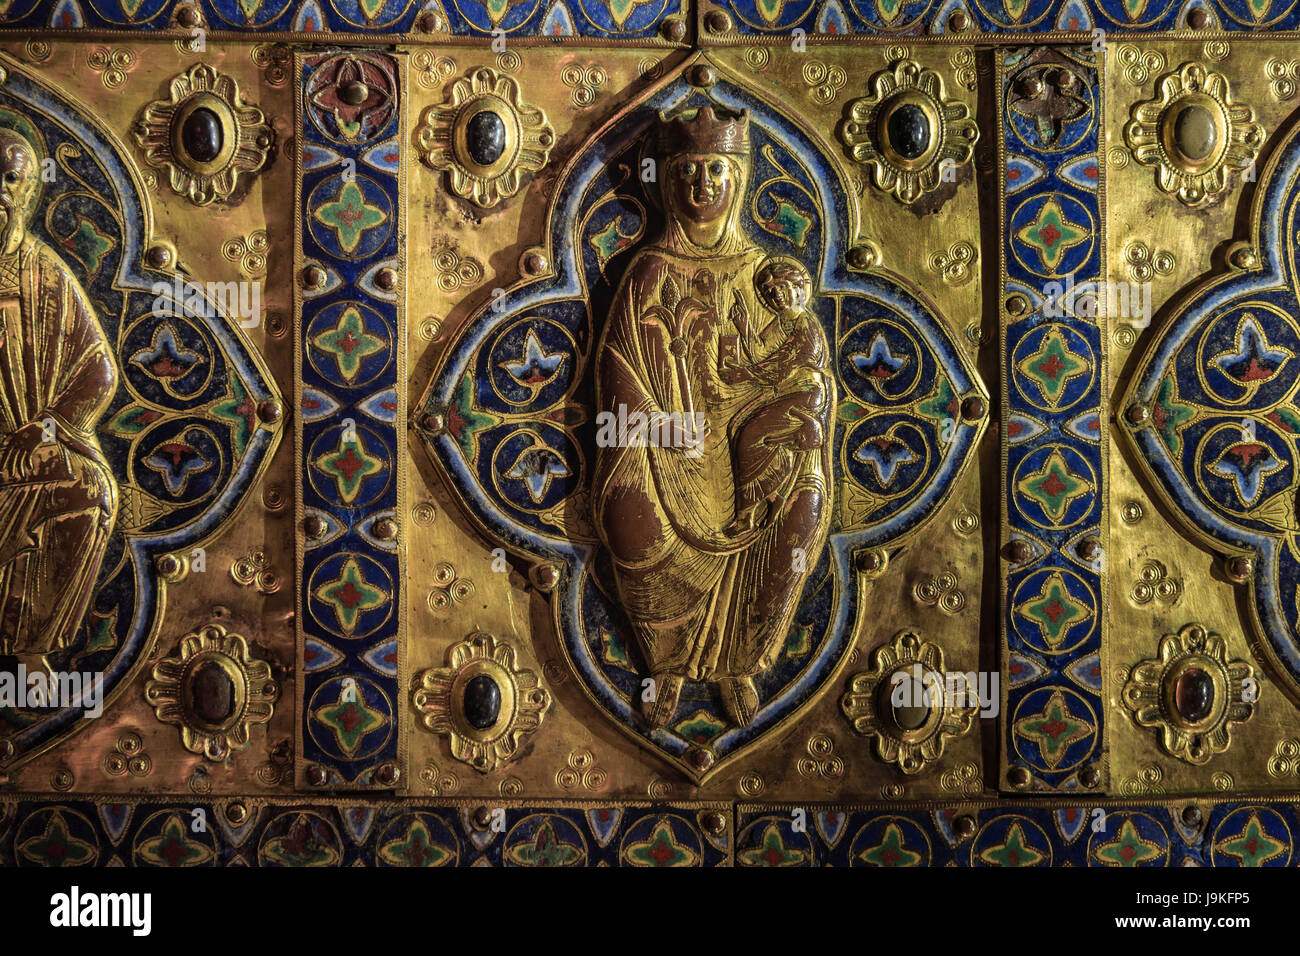 France, Indre, Saint Marcel, the church, the treasure, reliquary in copper and enamel - Stock Image